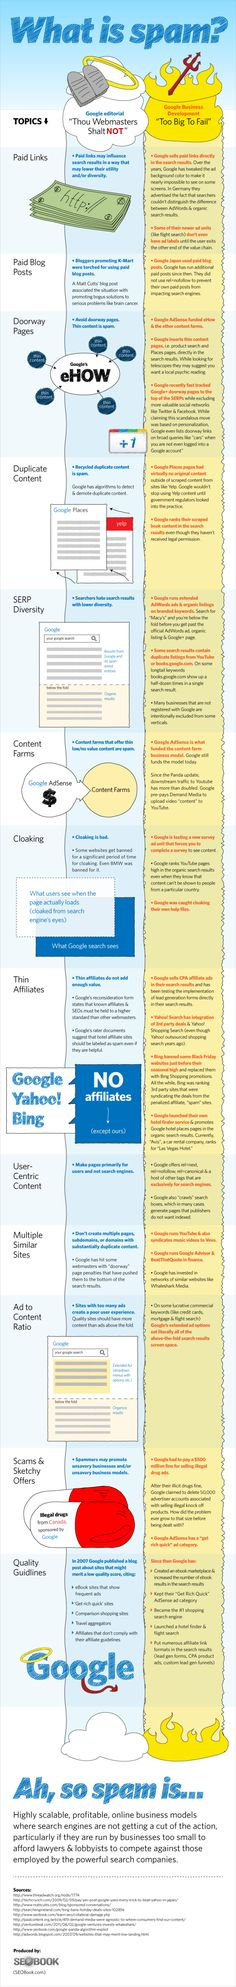 What is Search Spam - How Goggle Defines it? - #infographic - lots of useful information to know.